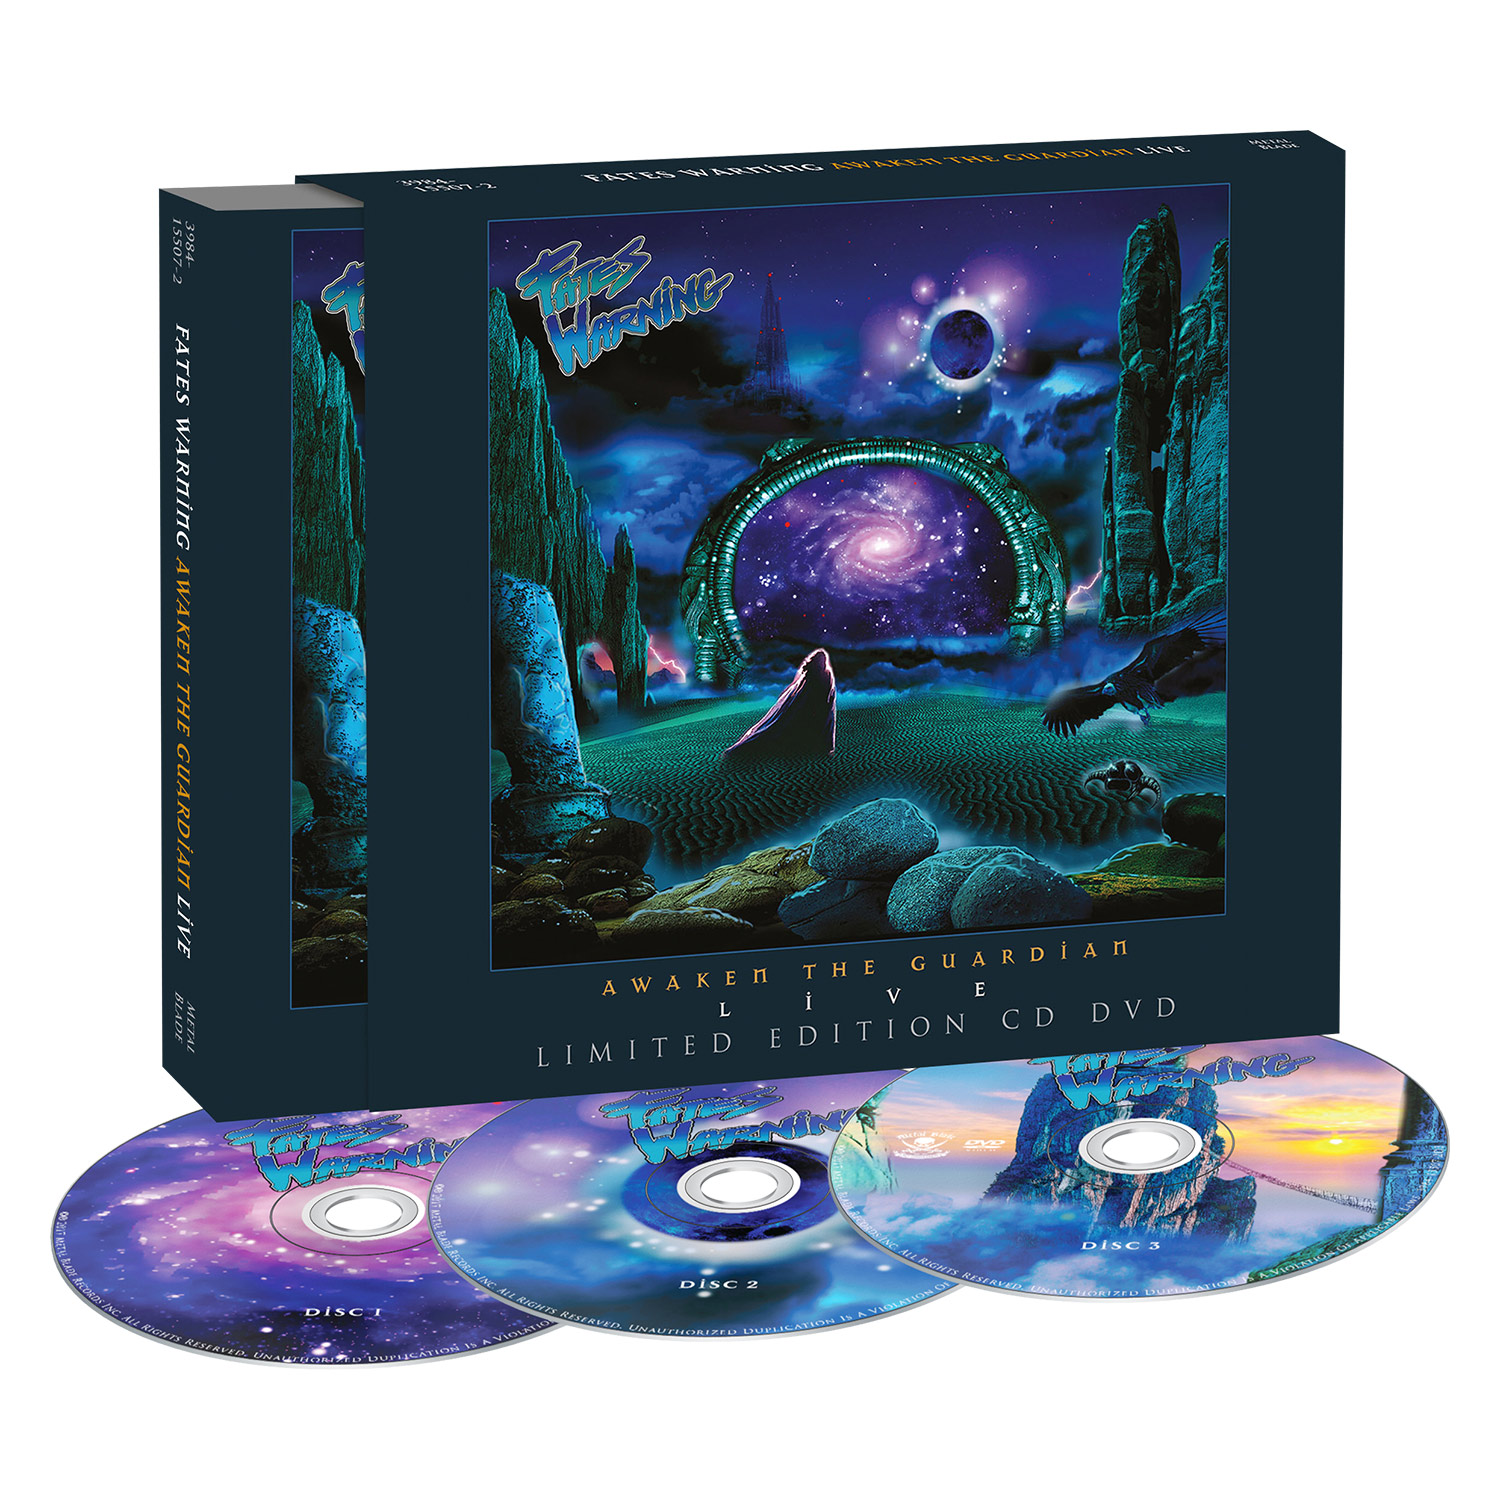 Awaken the Guardian Live - Digipak/LP Bundle - Purple